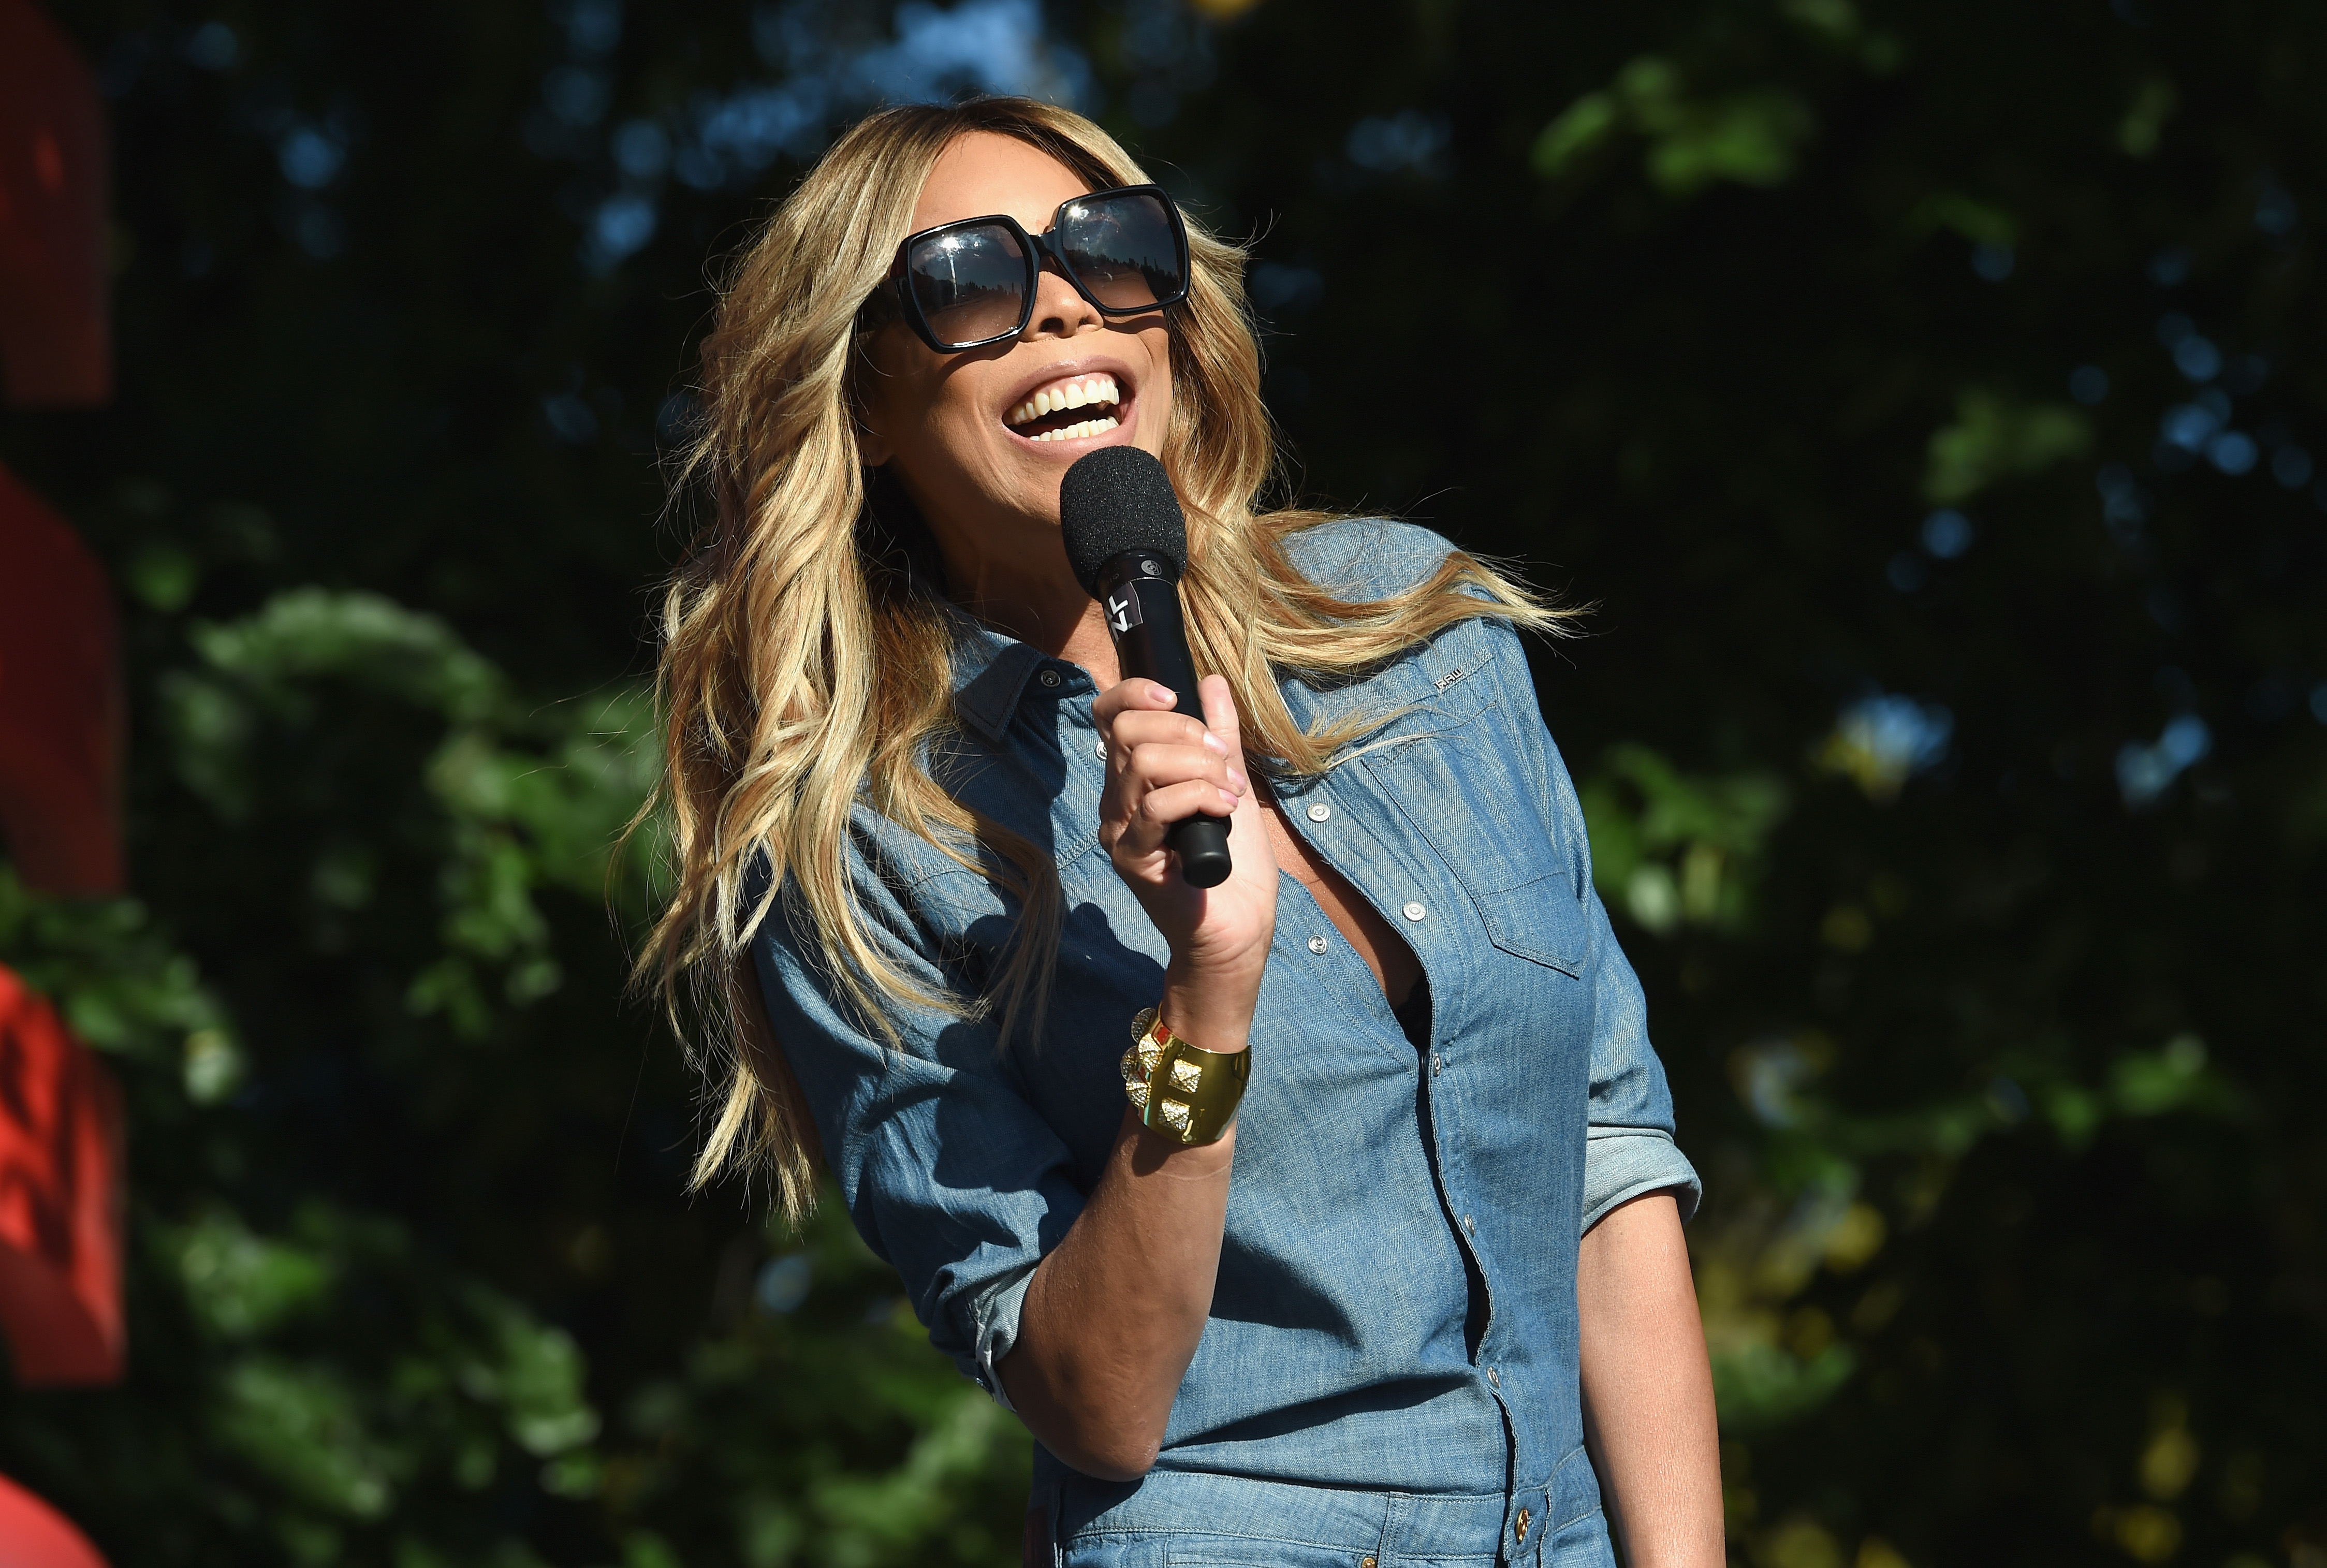 NEW YORK, NY - SEPTEMBER 23:  Wendy Williams speaks onstage during Global Citizen Festival 2017 at Central Park on September 23, 2017 in New York City.  (Photo by Michael Kovac/Getty Images)